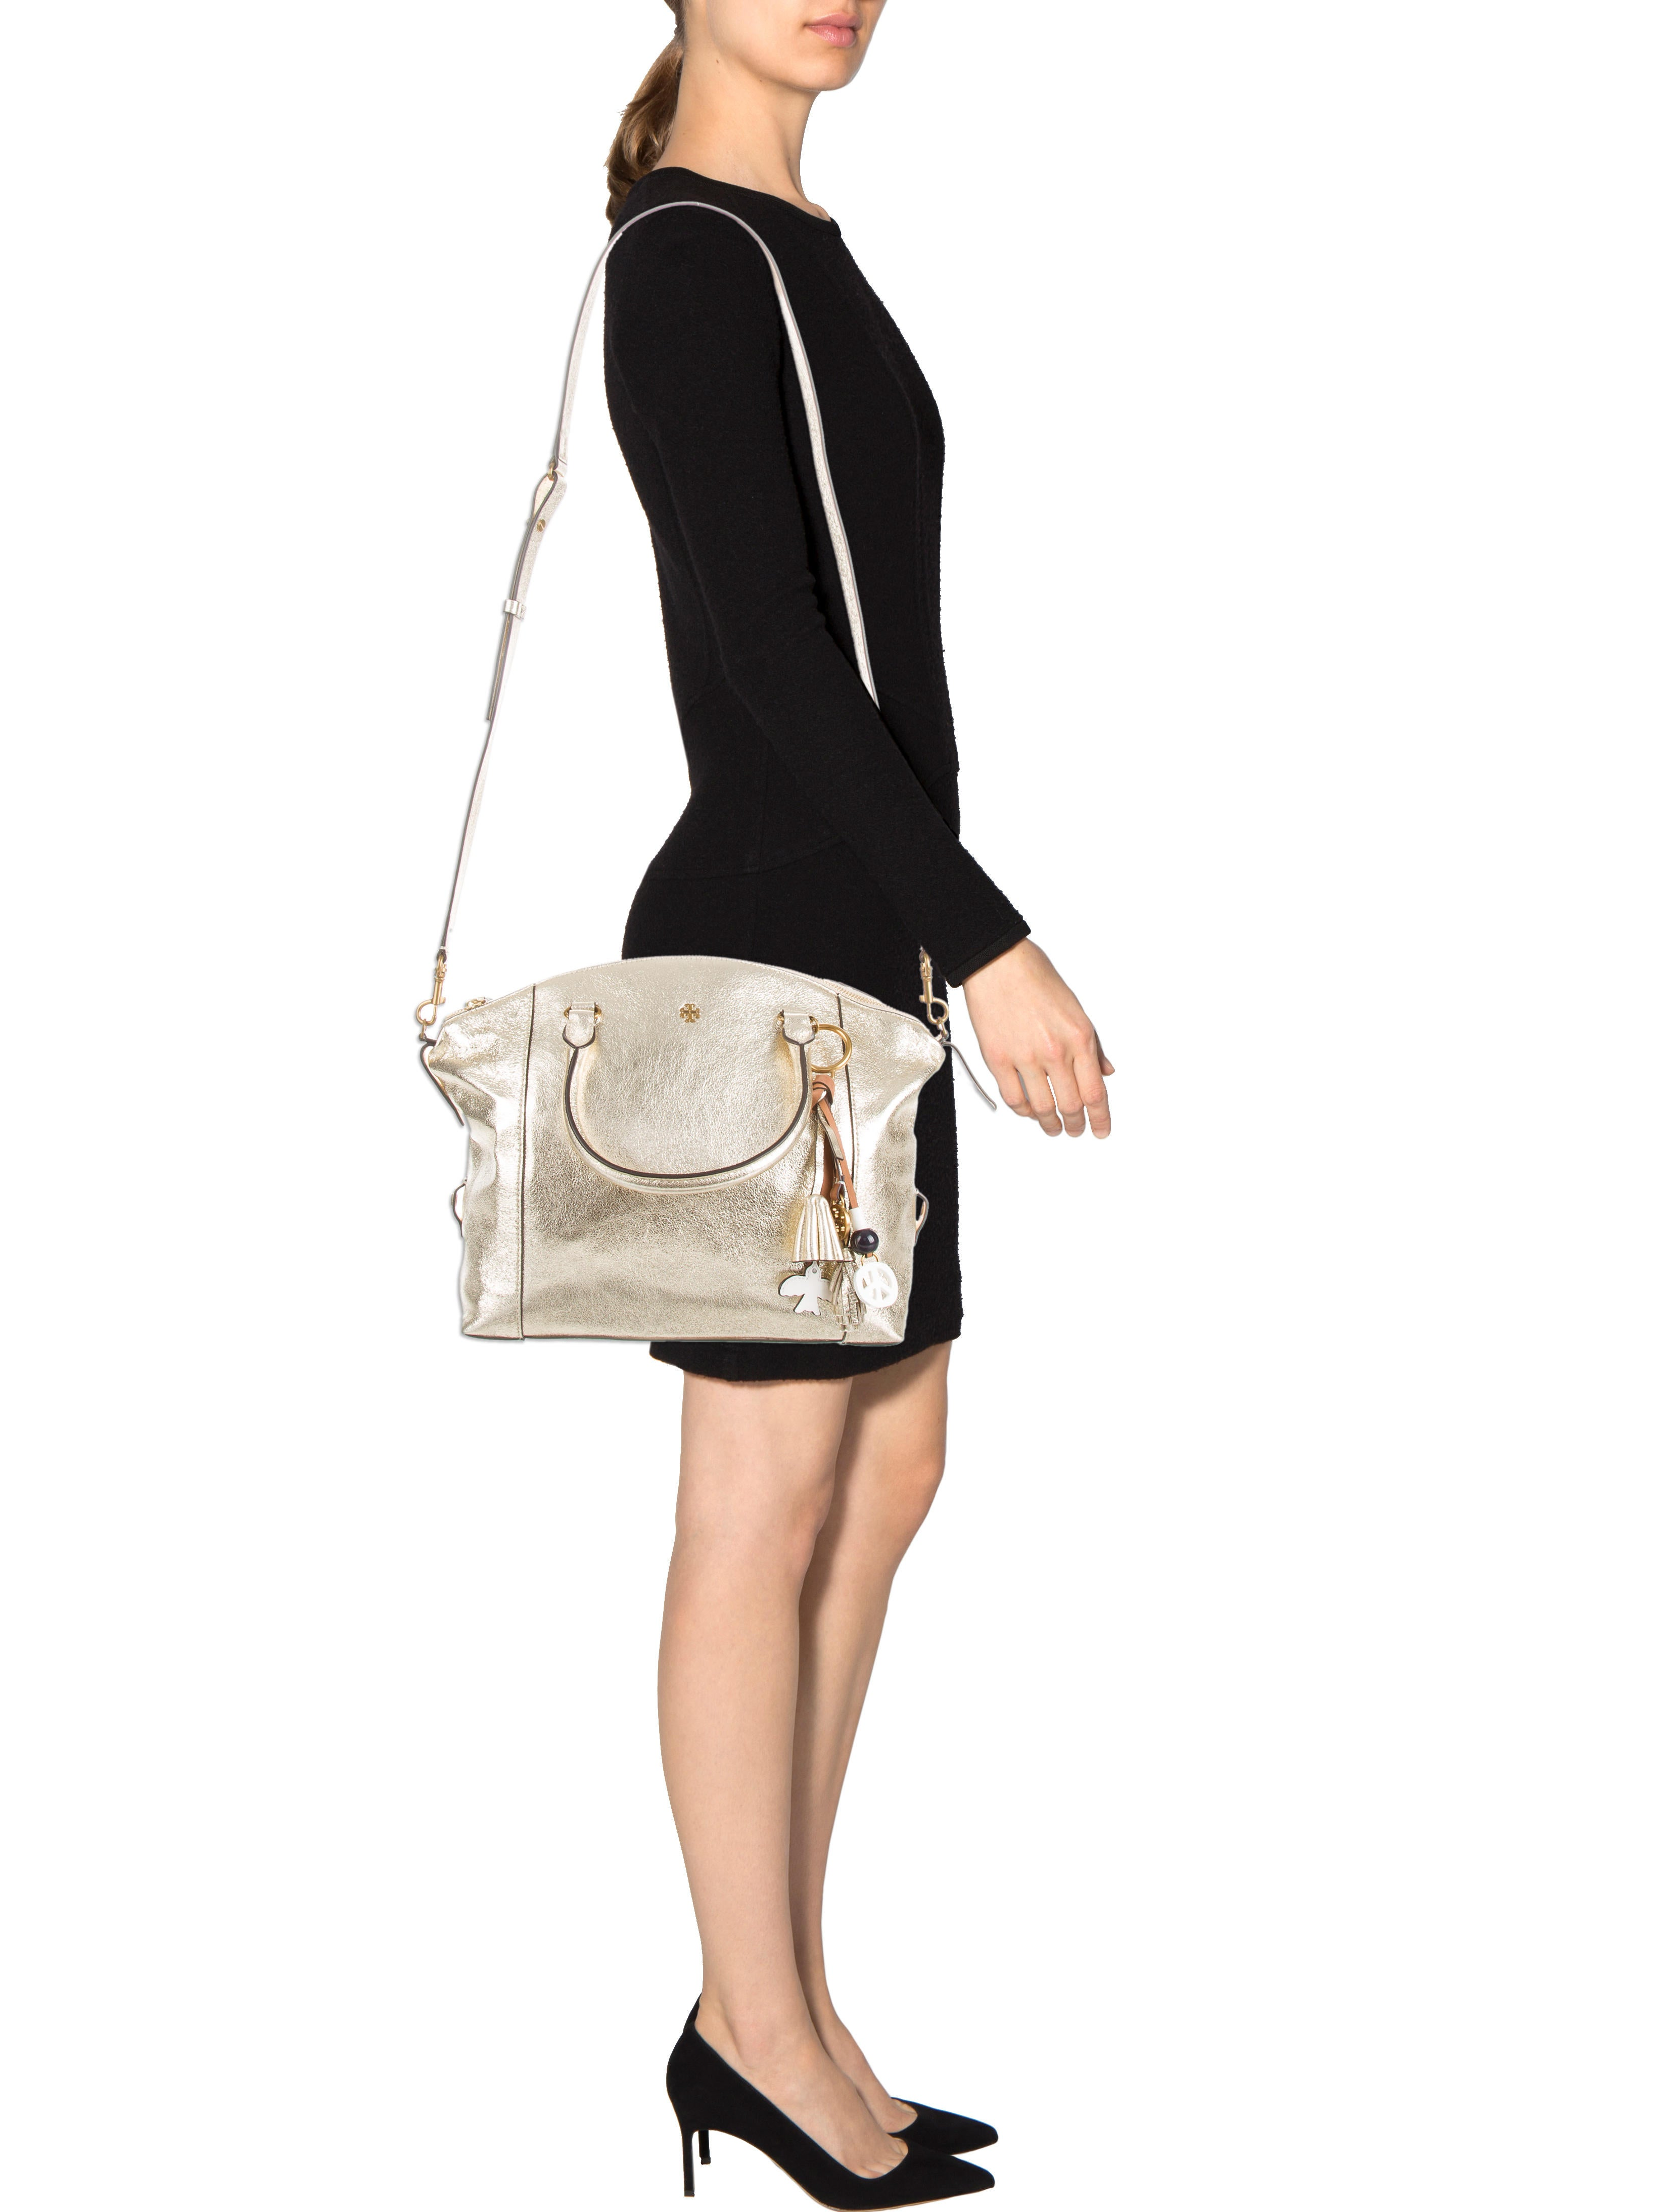 Tory Burch Metallic Peace Satchel Handbags WTO100678  : WTO1006782enlarged from www.therealreal.com size 3316 x 4376 jpeg 453kB